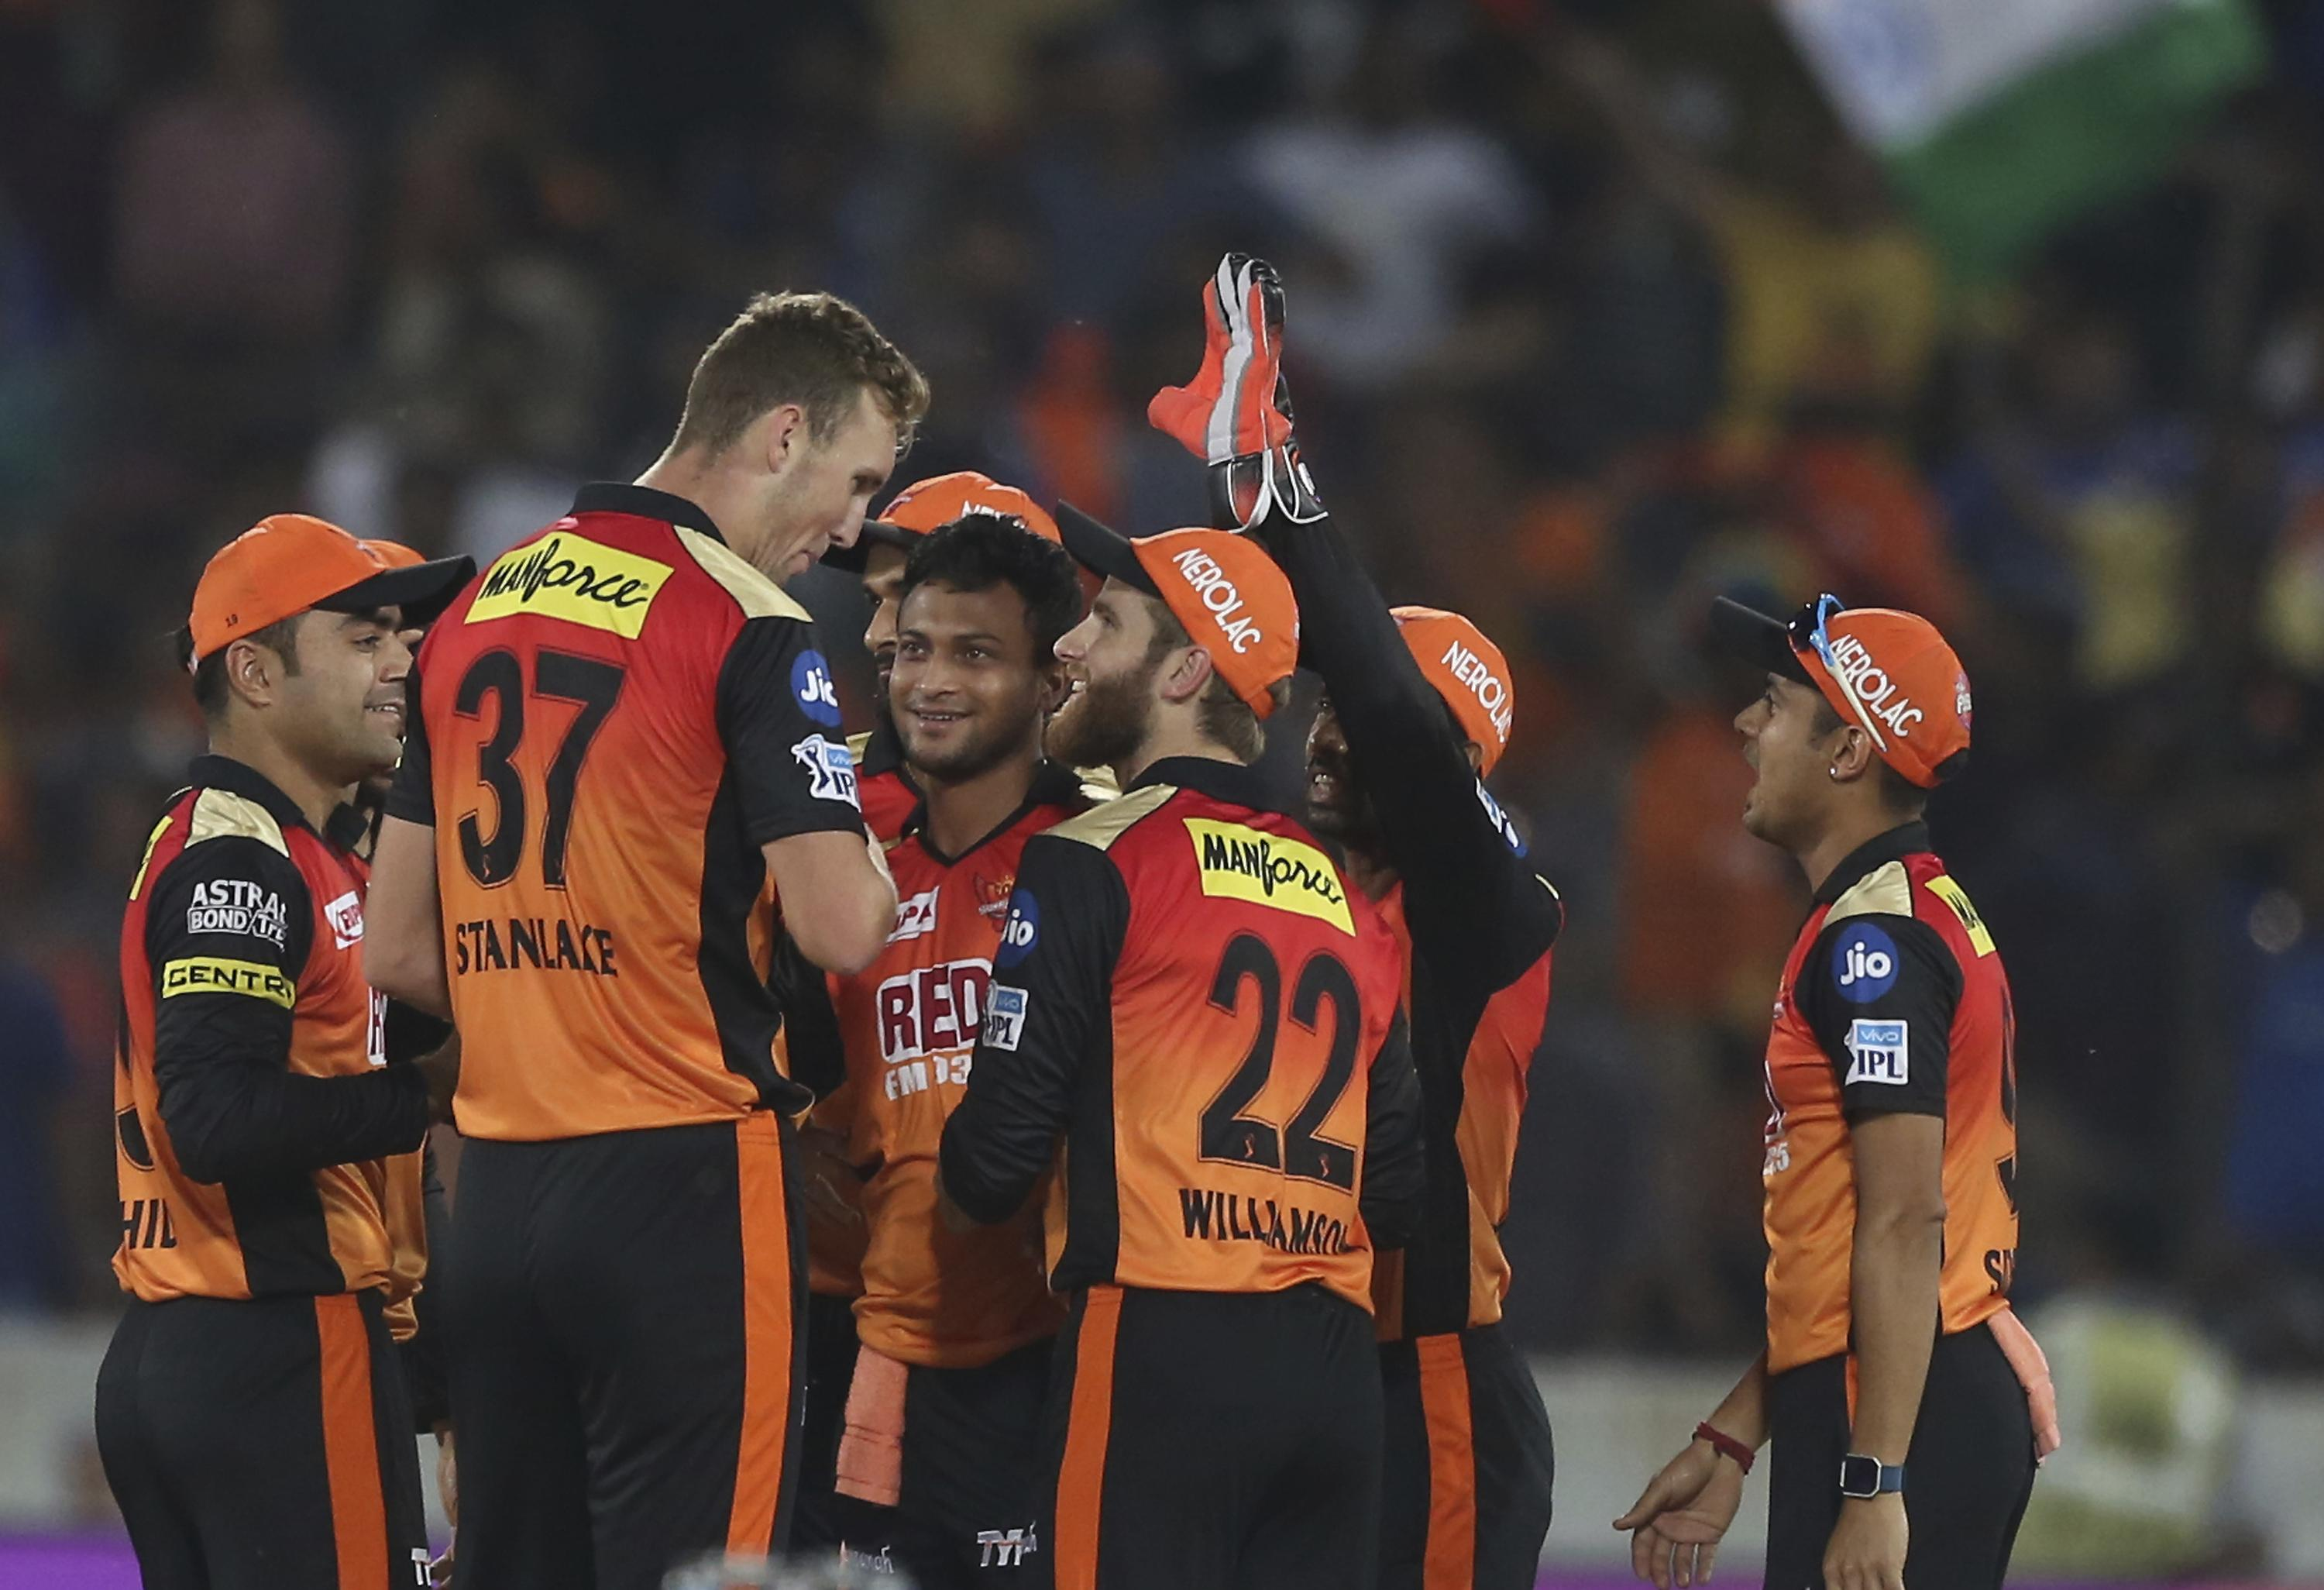 Sunrisers Hyderabad won the IPL in 2016 and have made a strong start this season